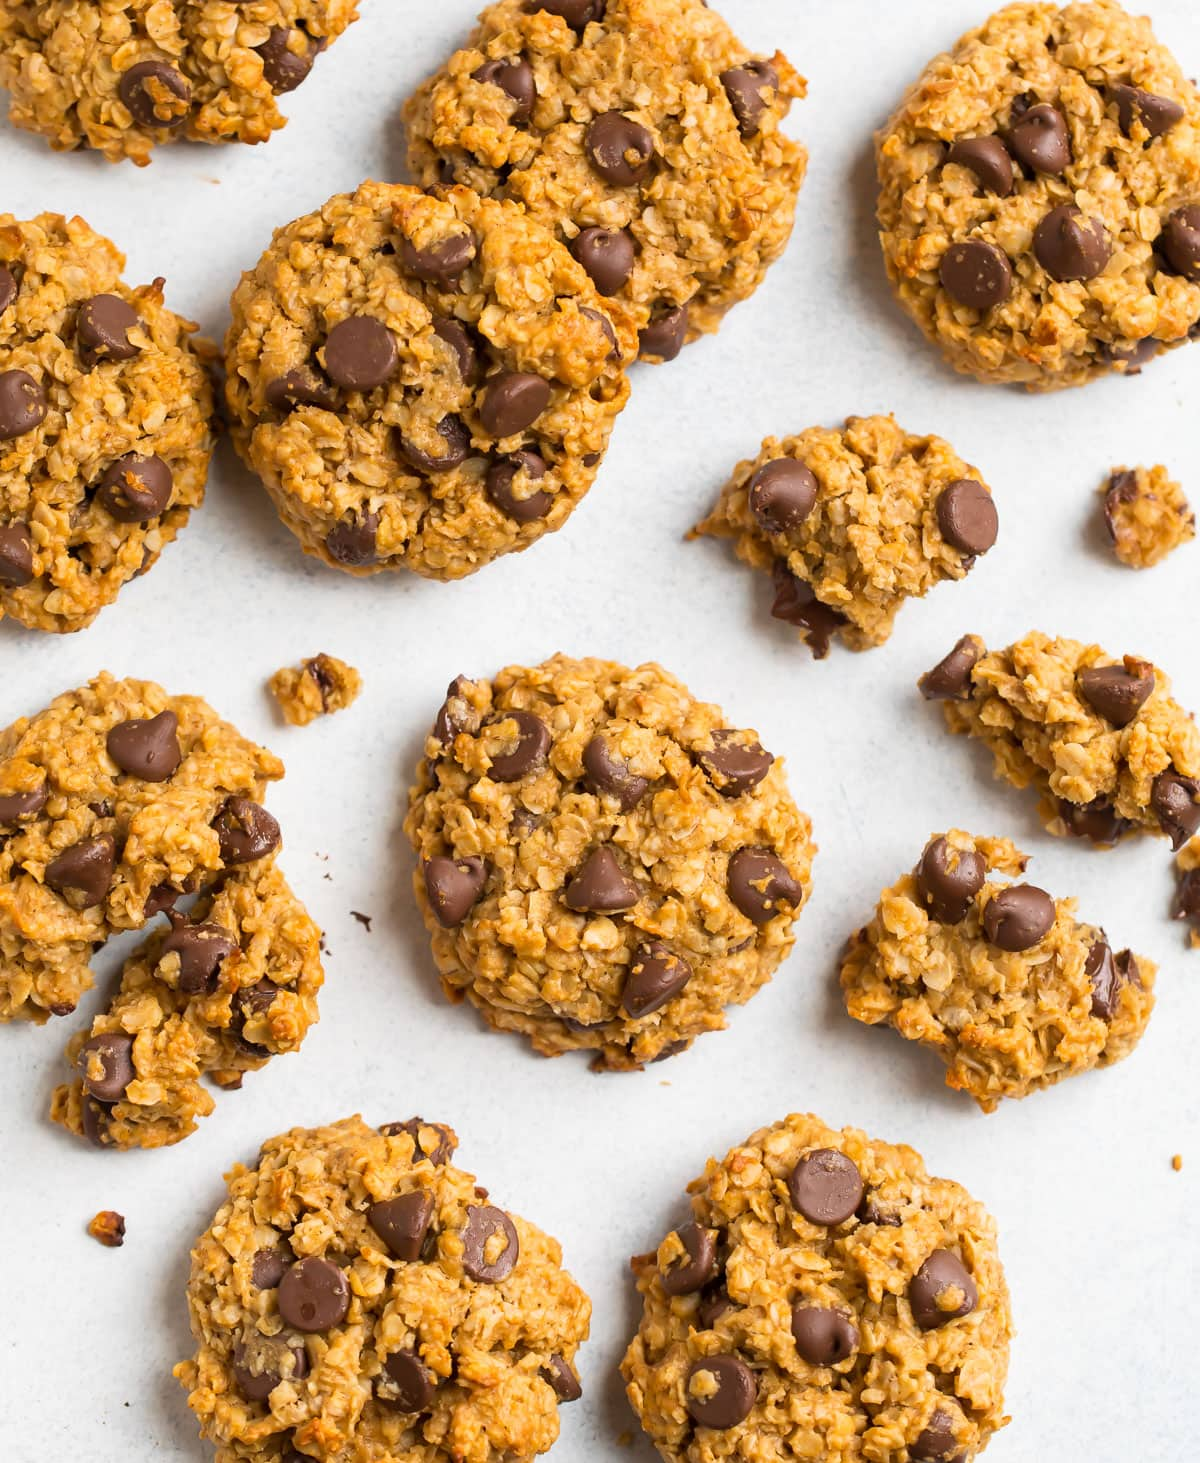 Peanut butter oatmeal cookies with chocolate chips and honey